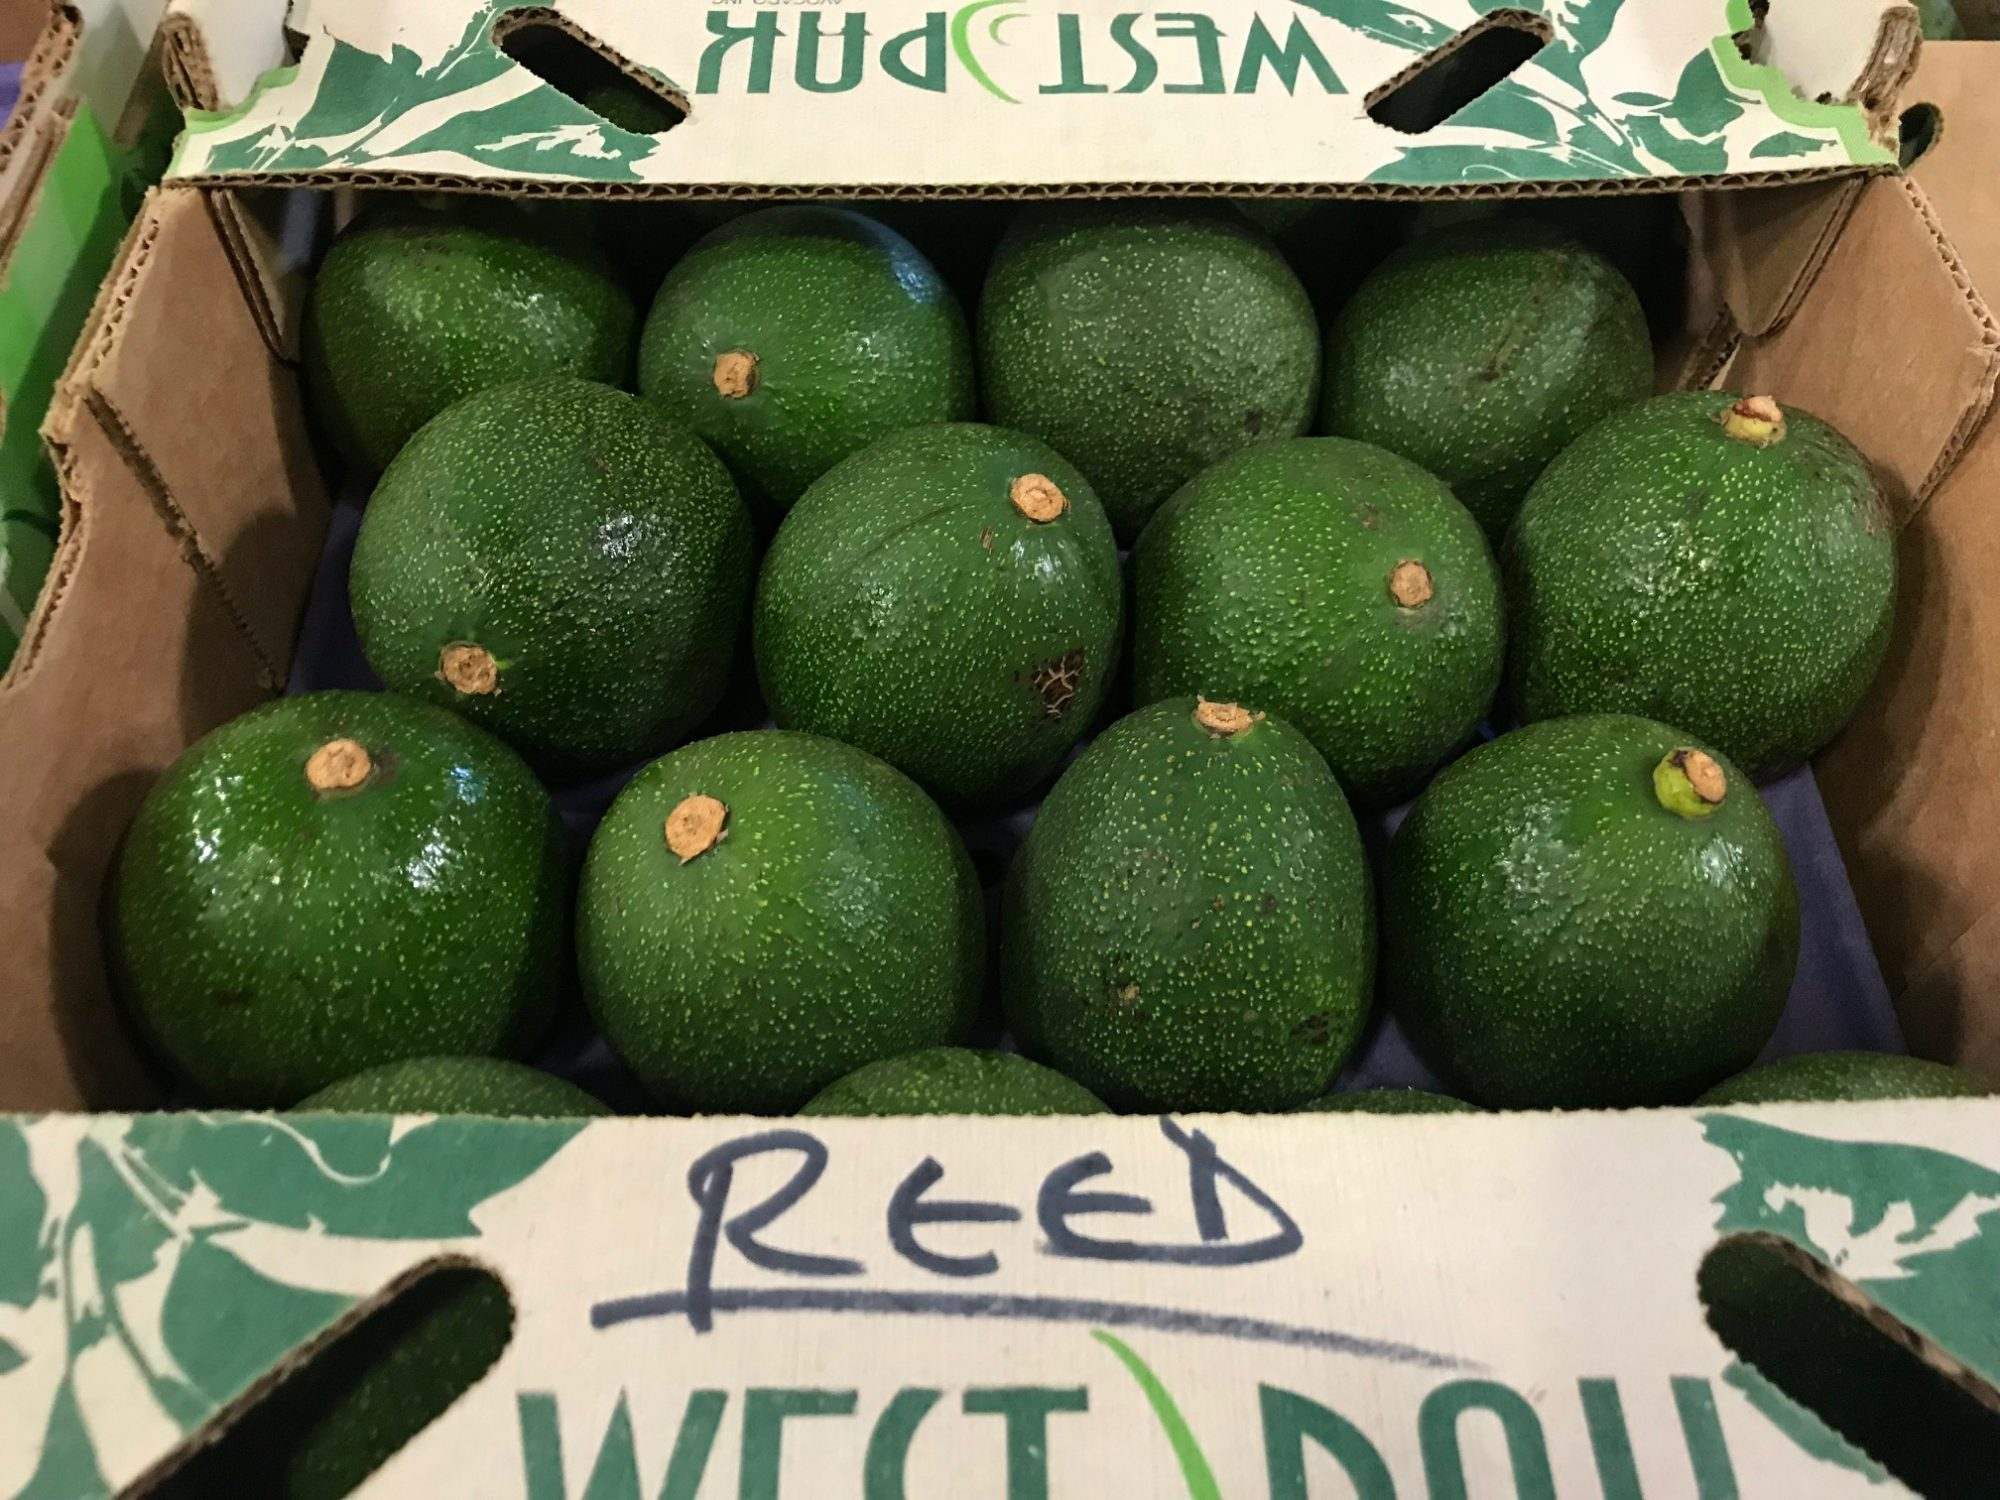 Meet the Reed Avocado, Hass's Rounder and Creamier Cousin